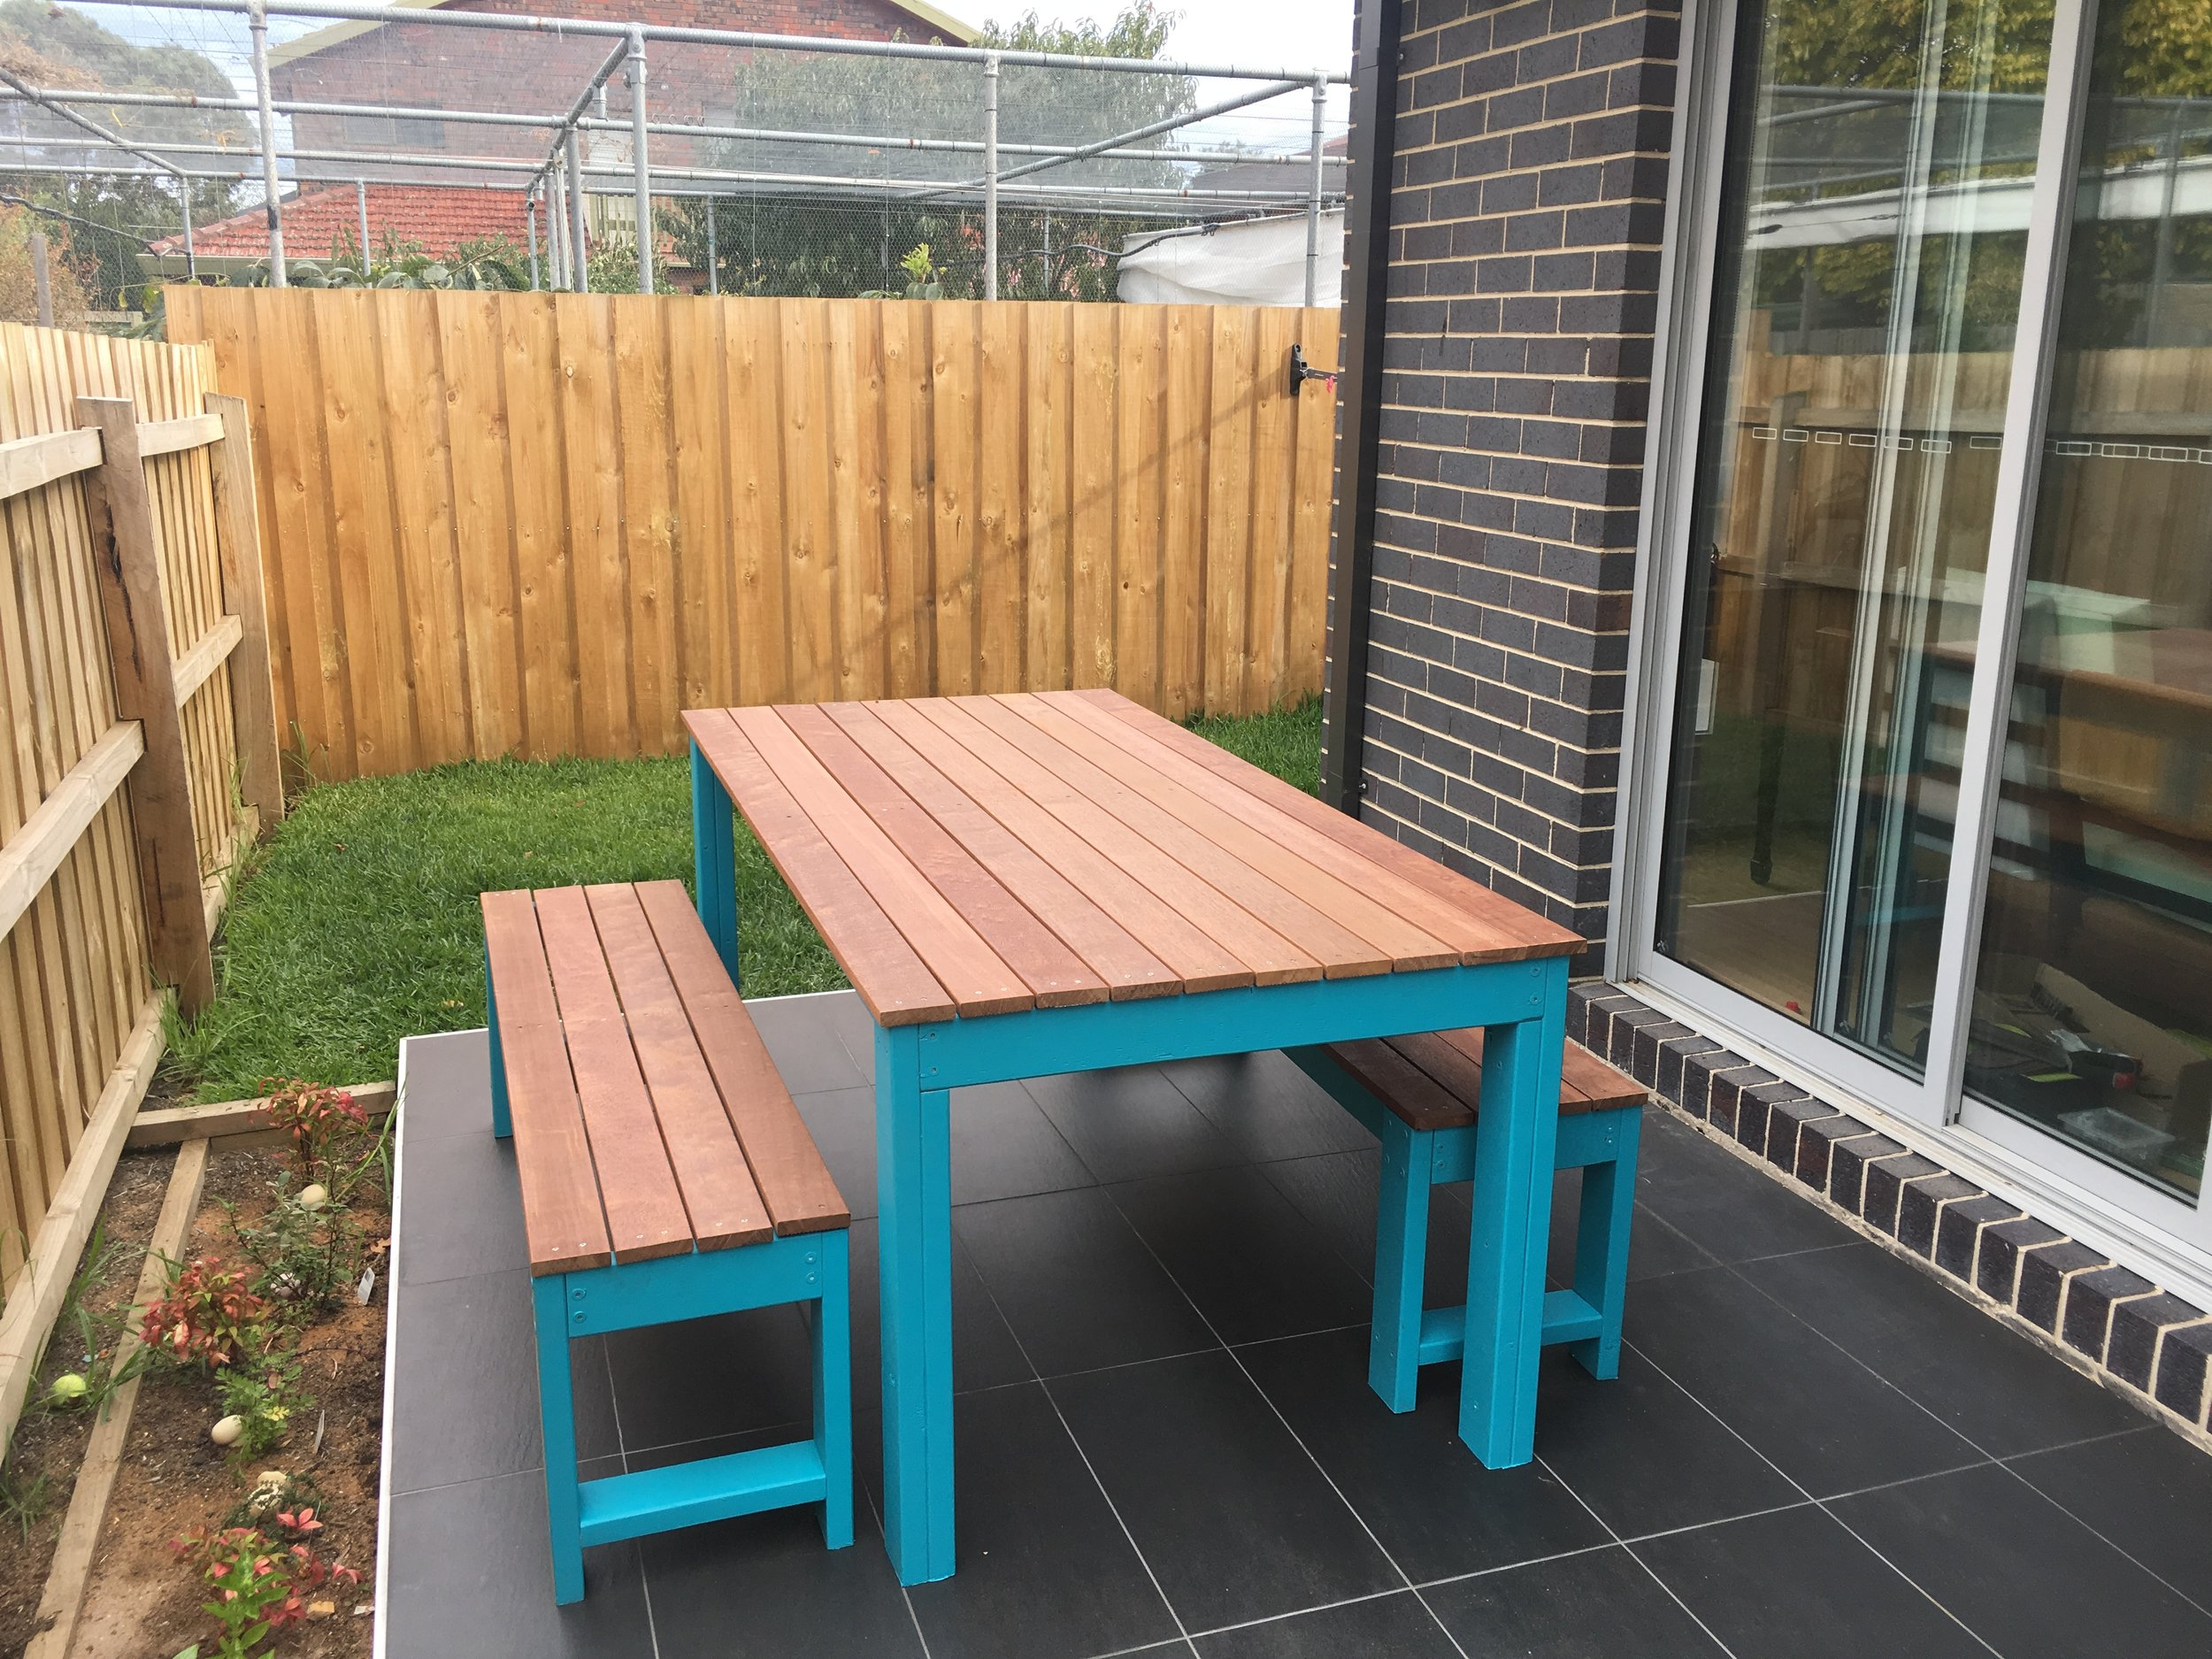 An outdoor table project I built this year